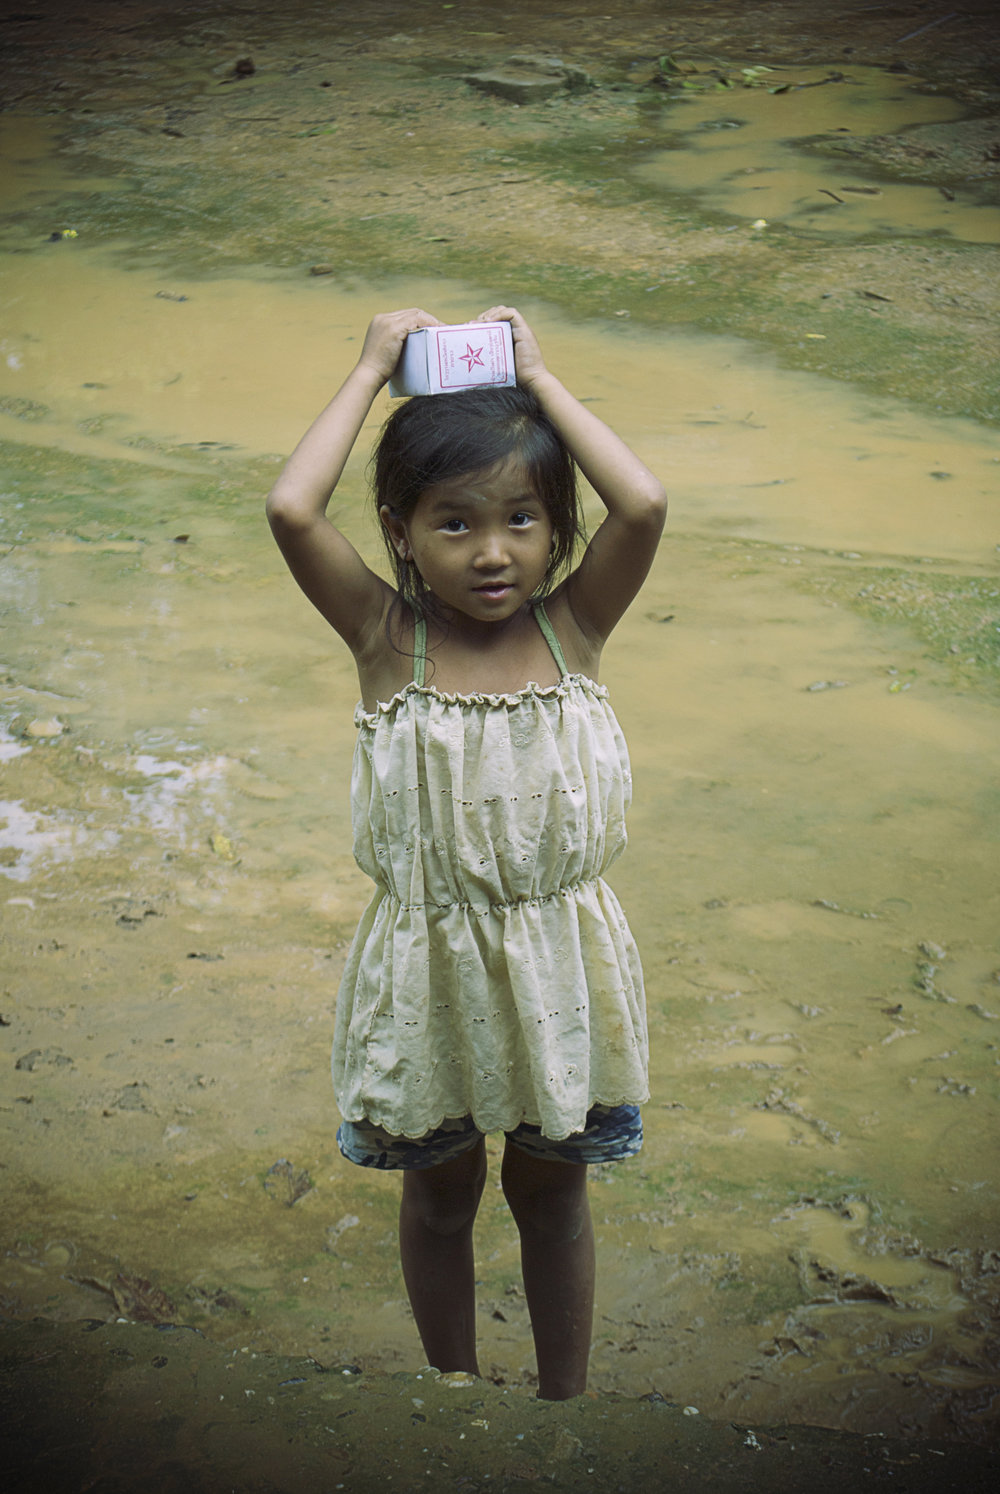 PORTRAITS | Girl in River, Ban Lad Khammoune, Laos